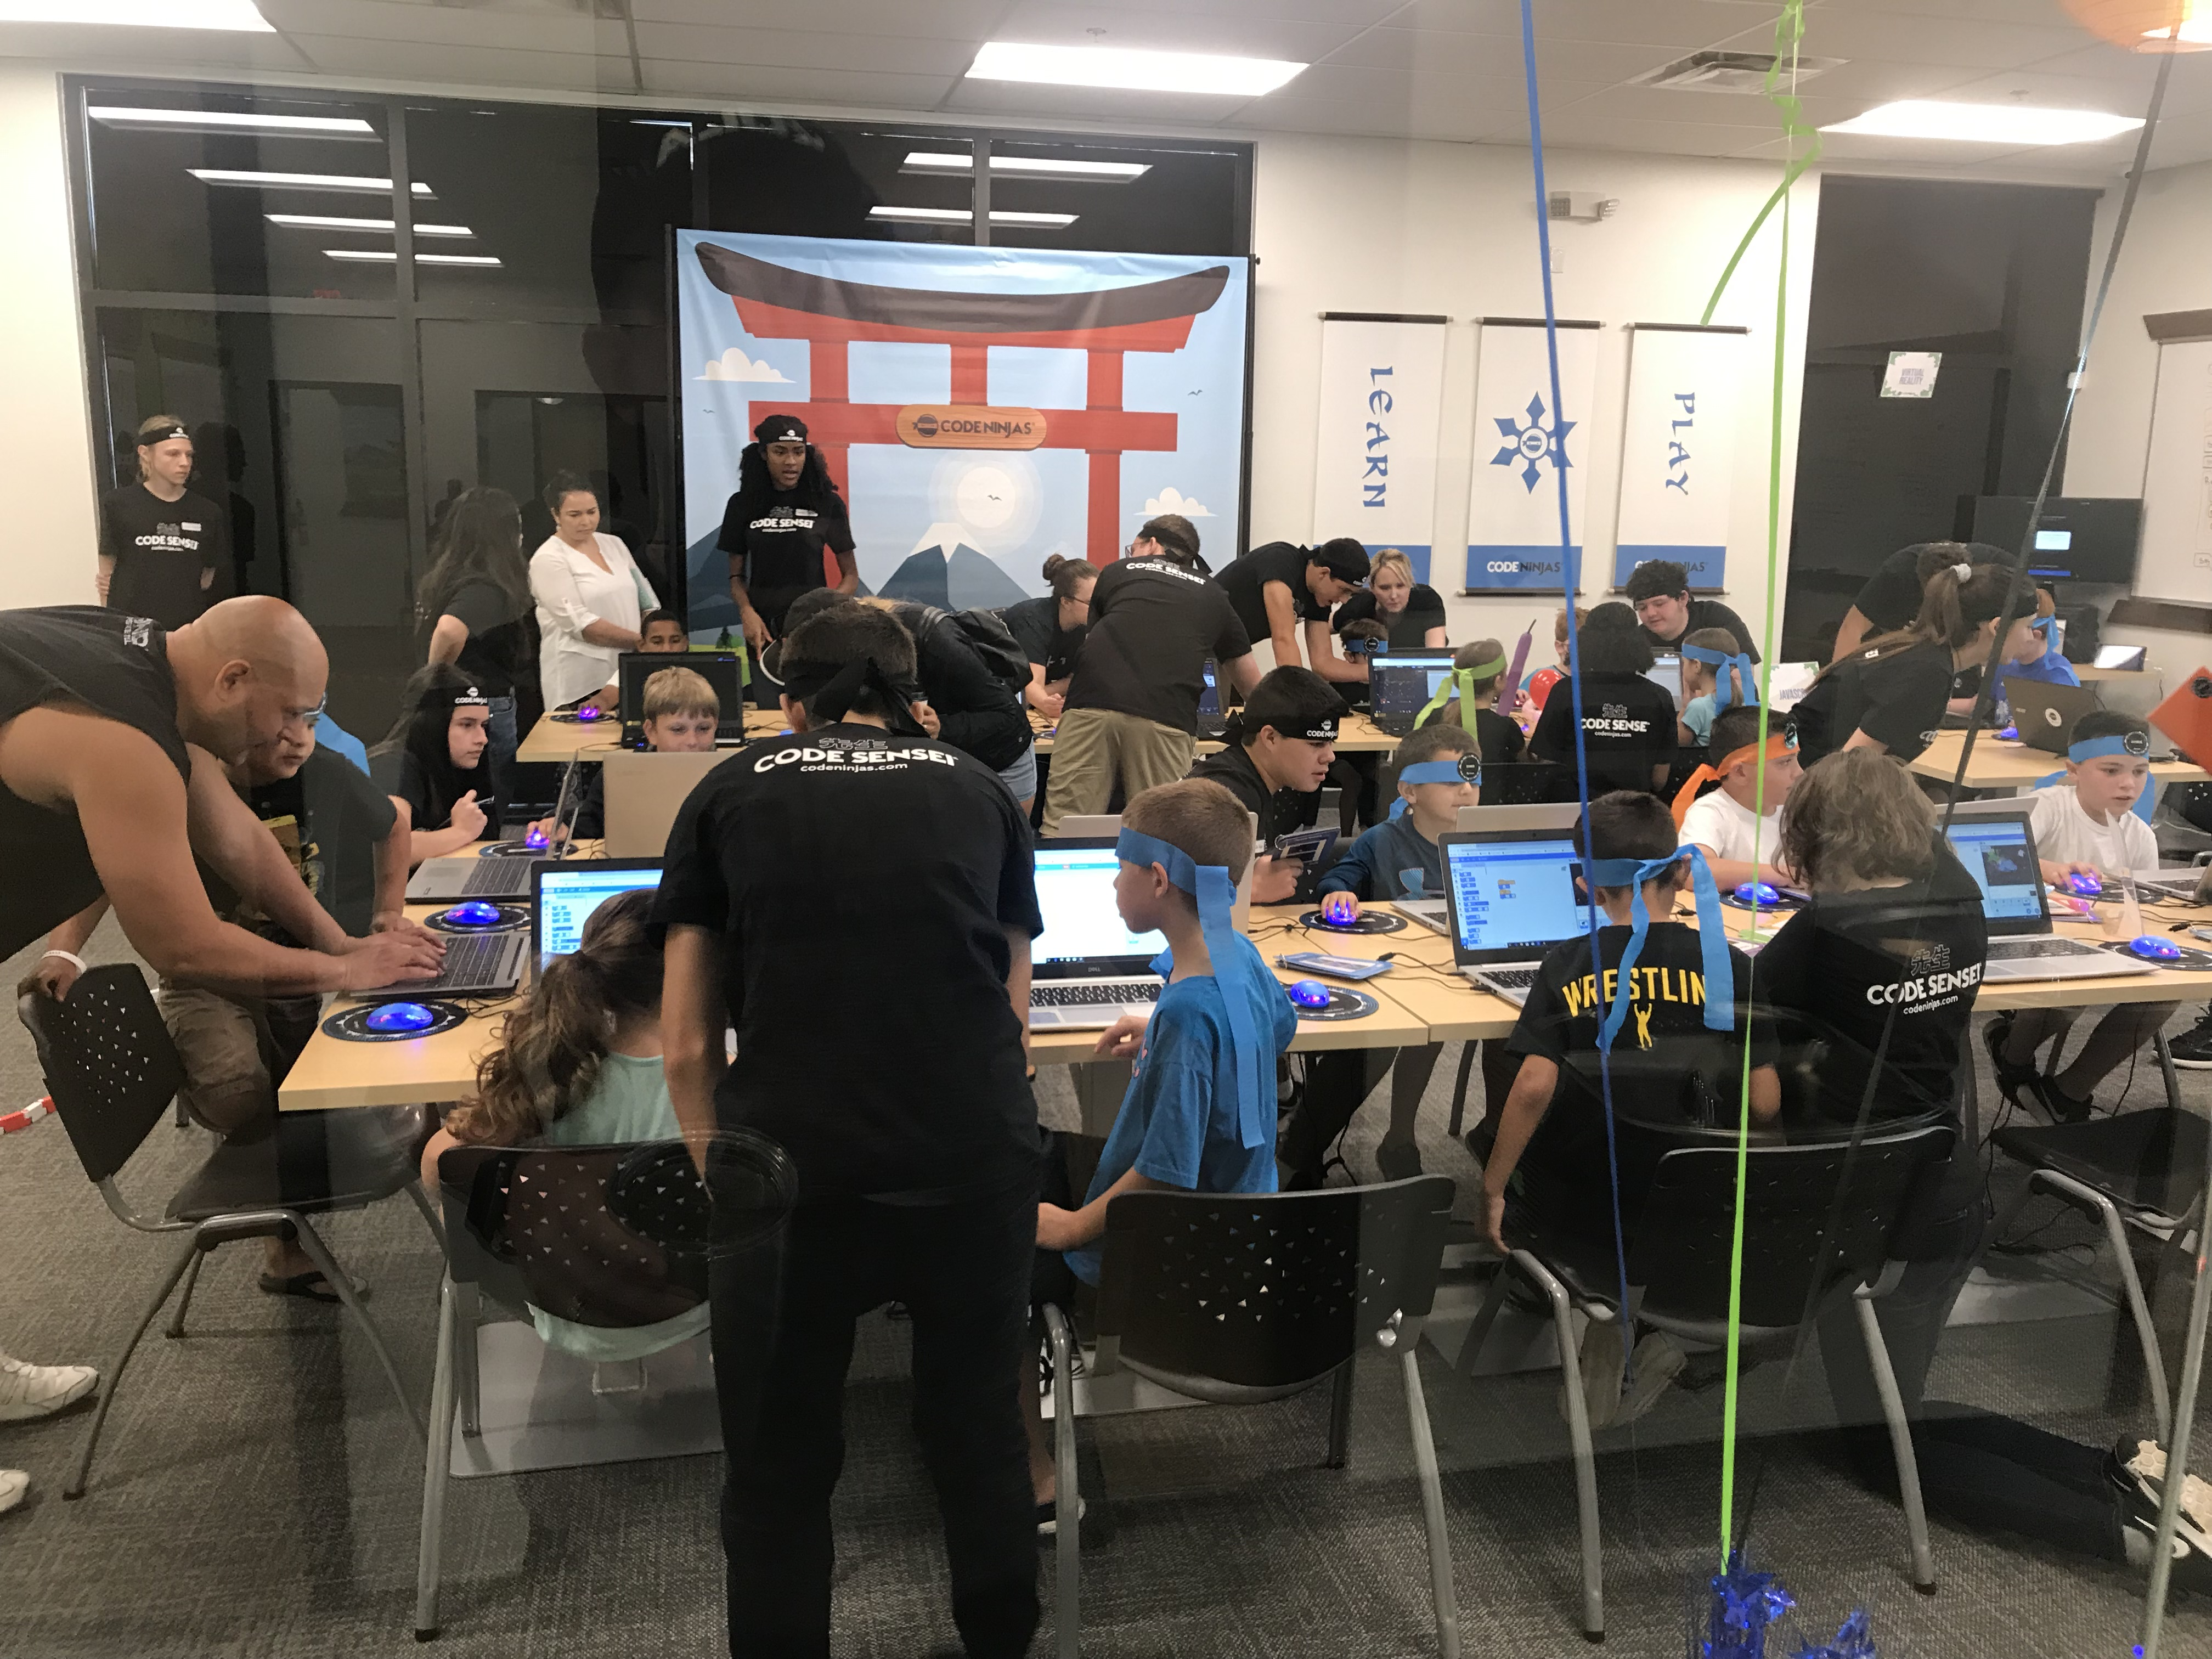 classroom full of kids wearing ninja headbands while using laptops.